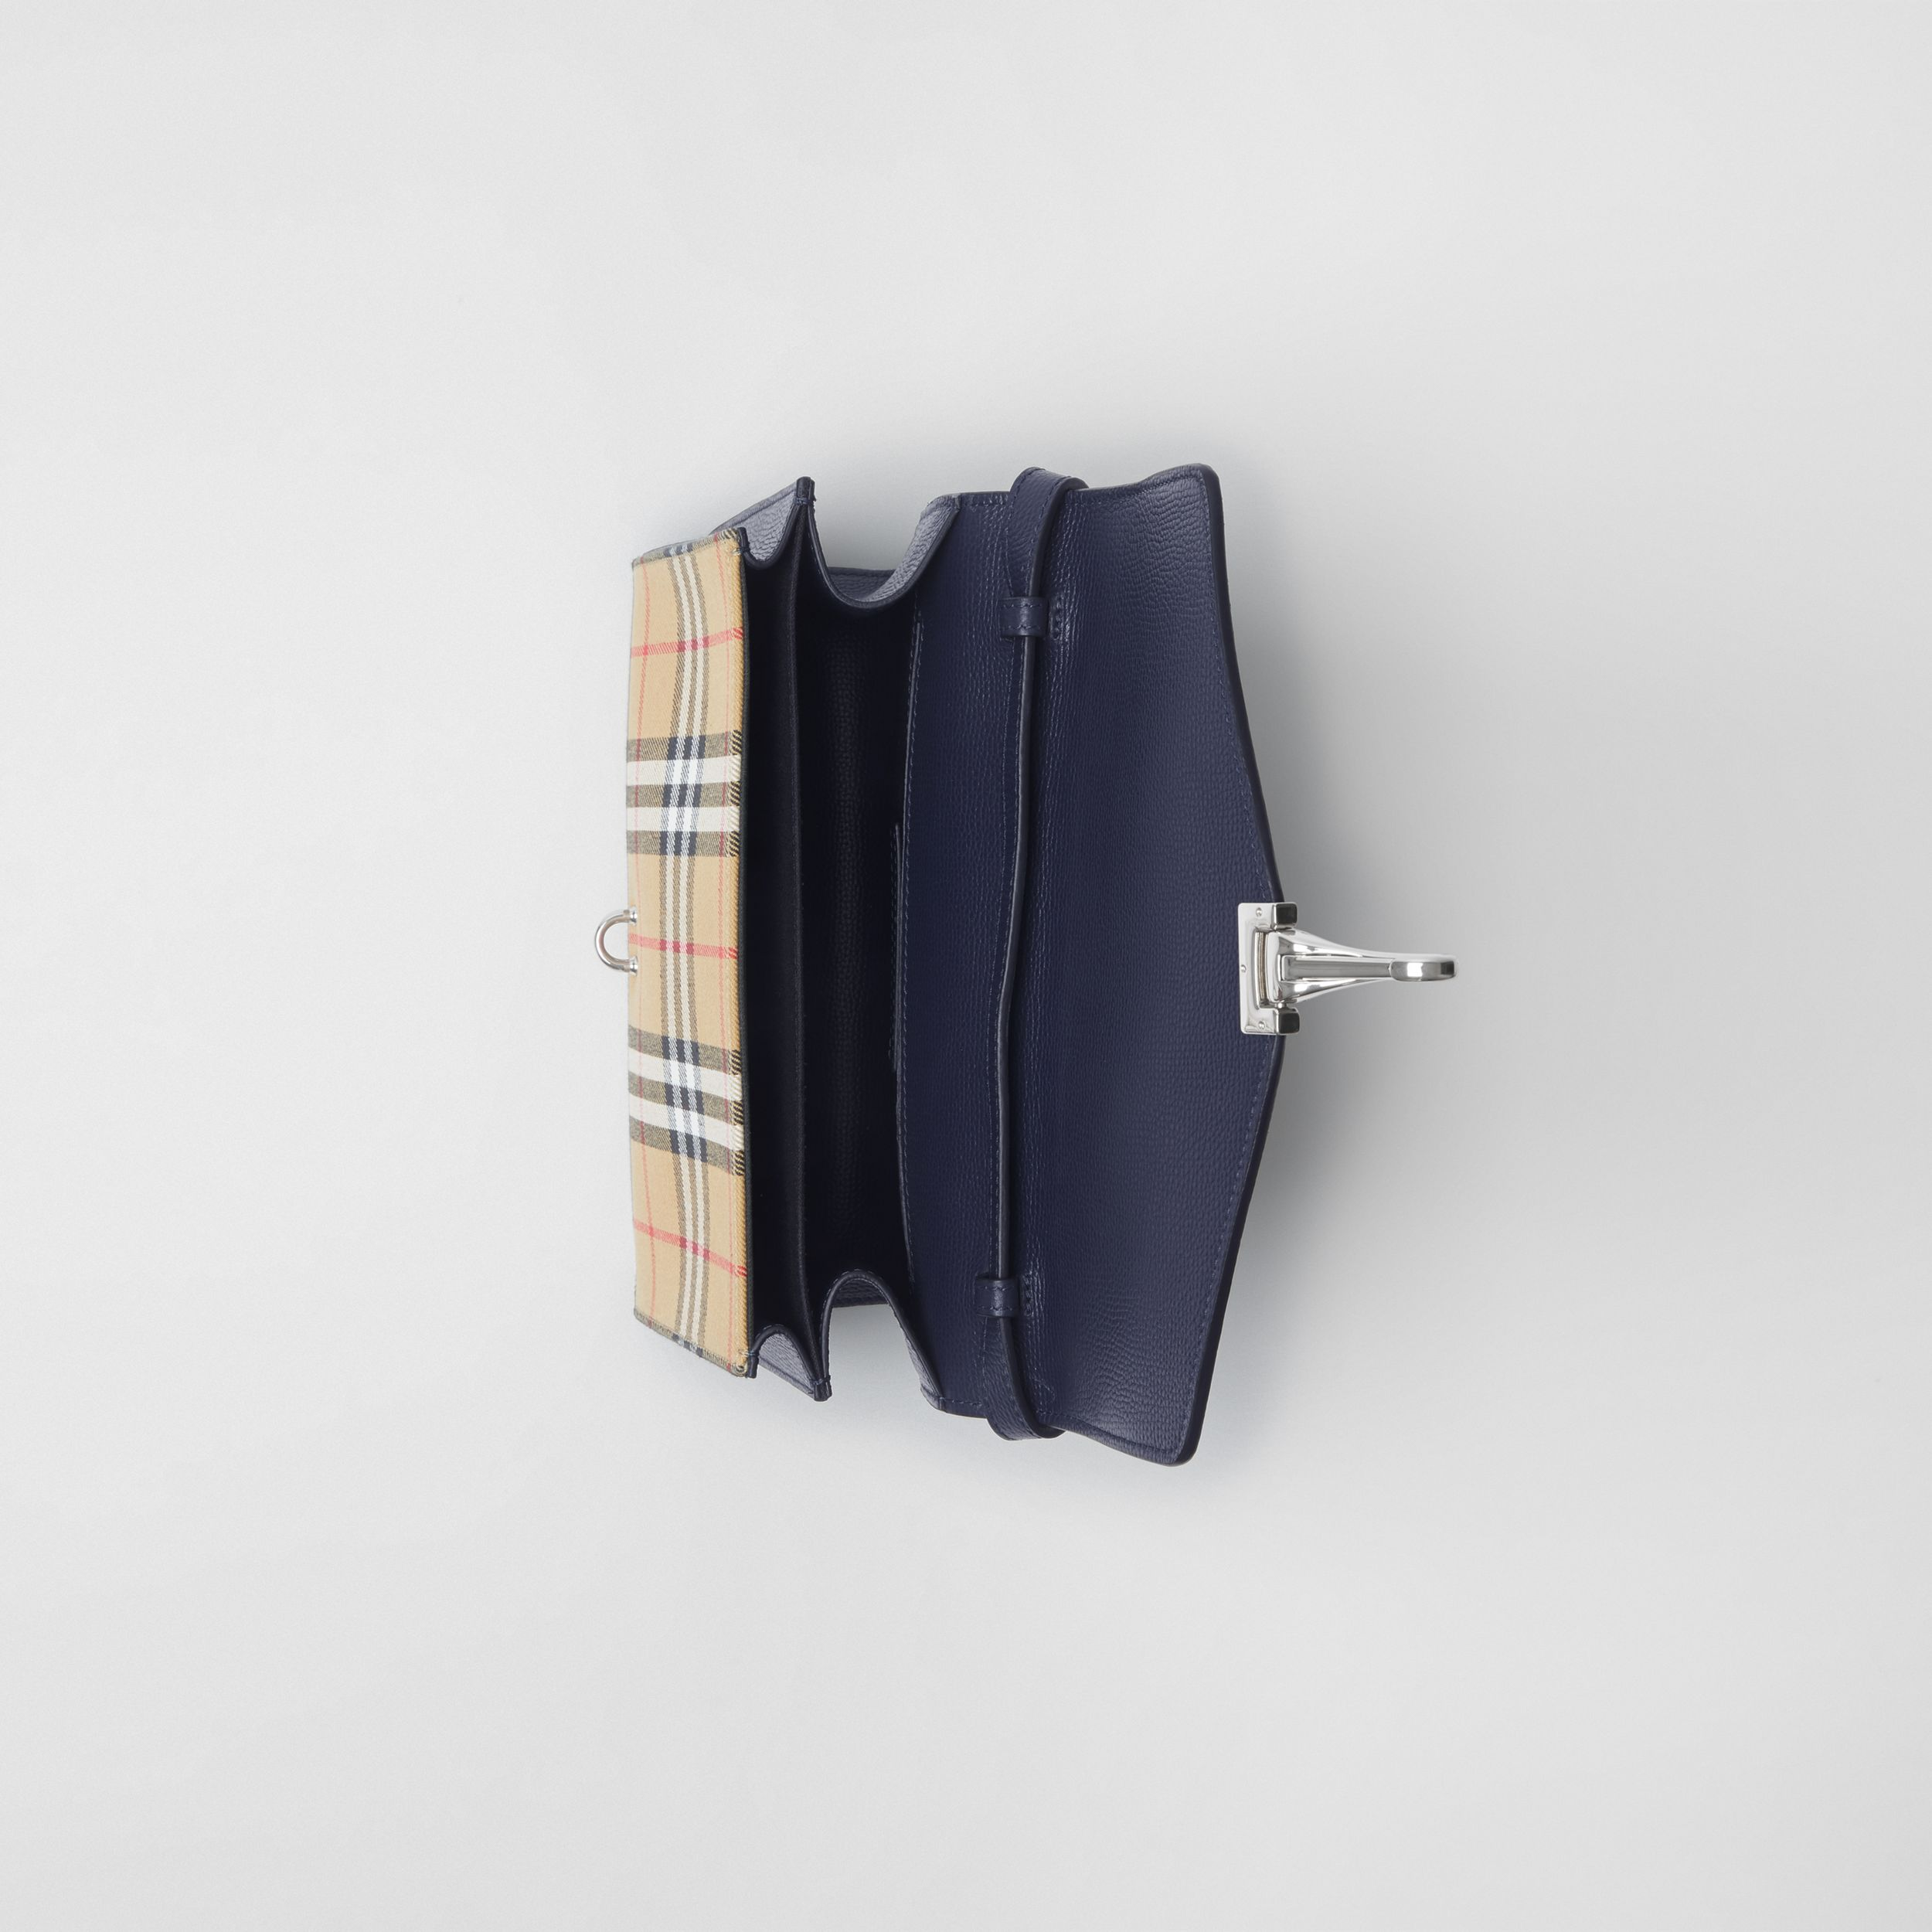 Small Vintage Check and Leather Crossbody Bag in Regency Blue | Burberry - 4